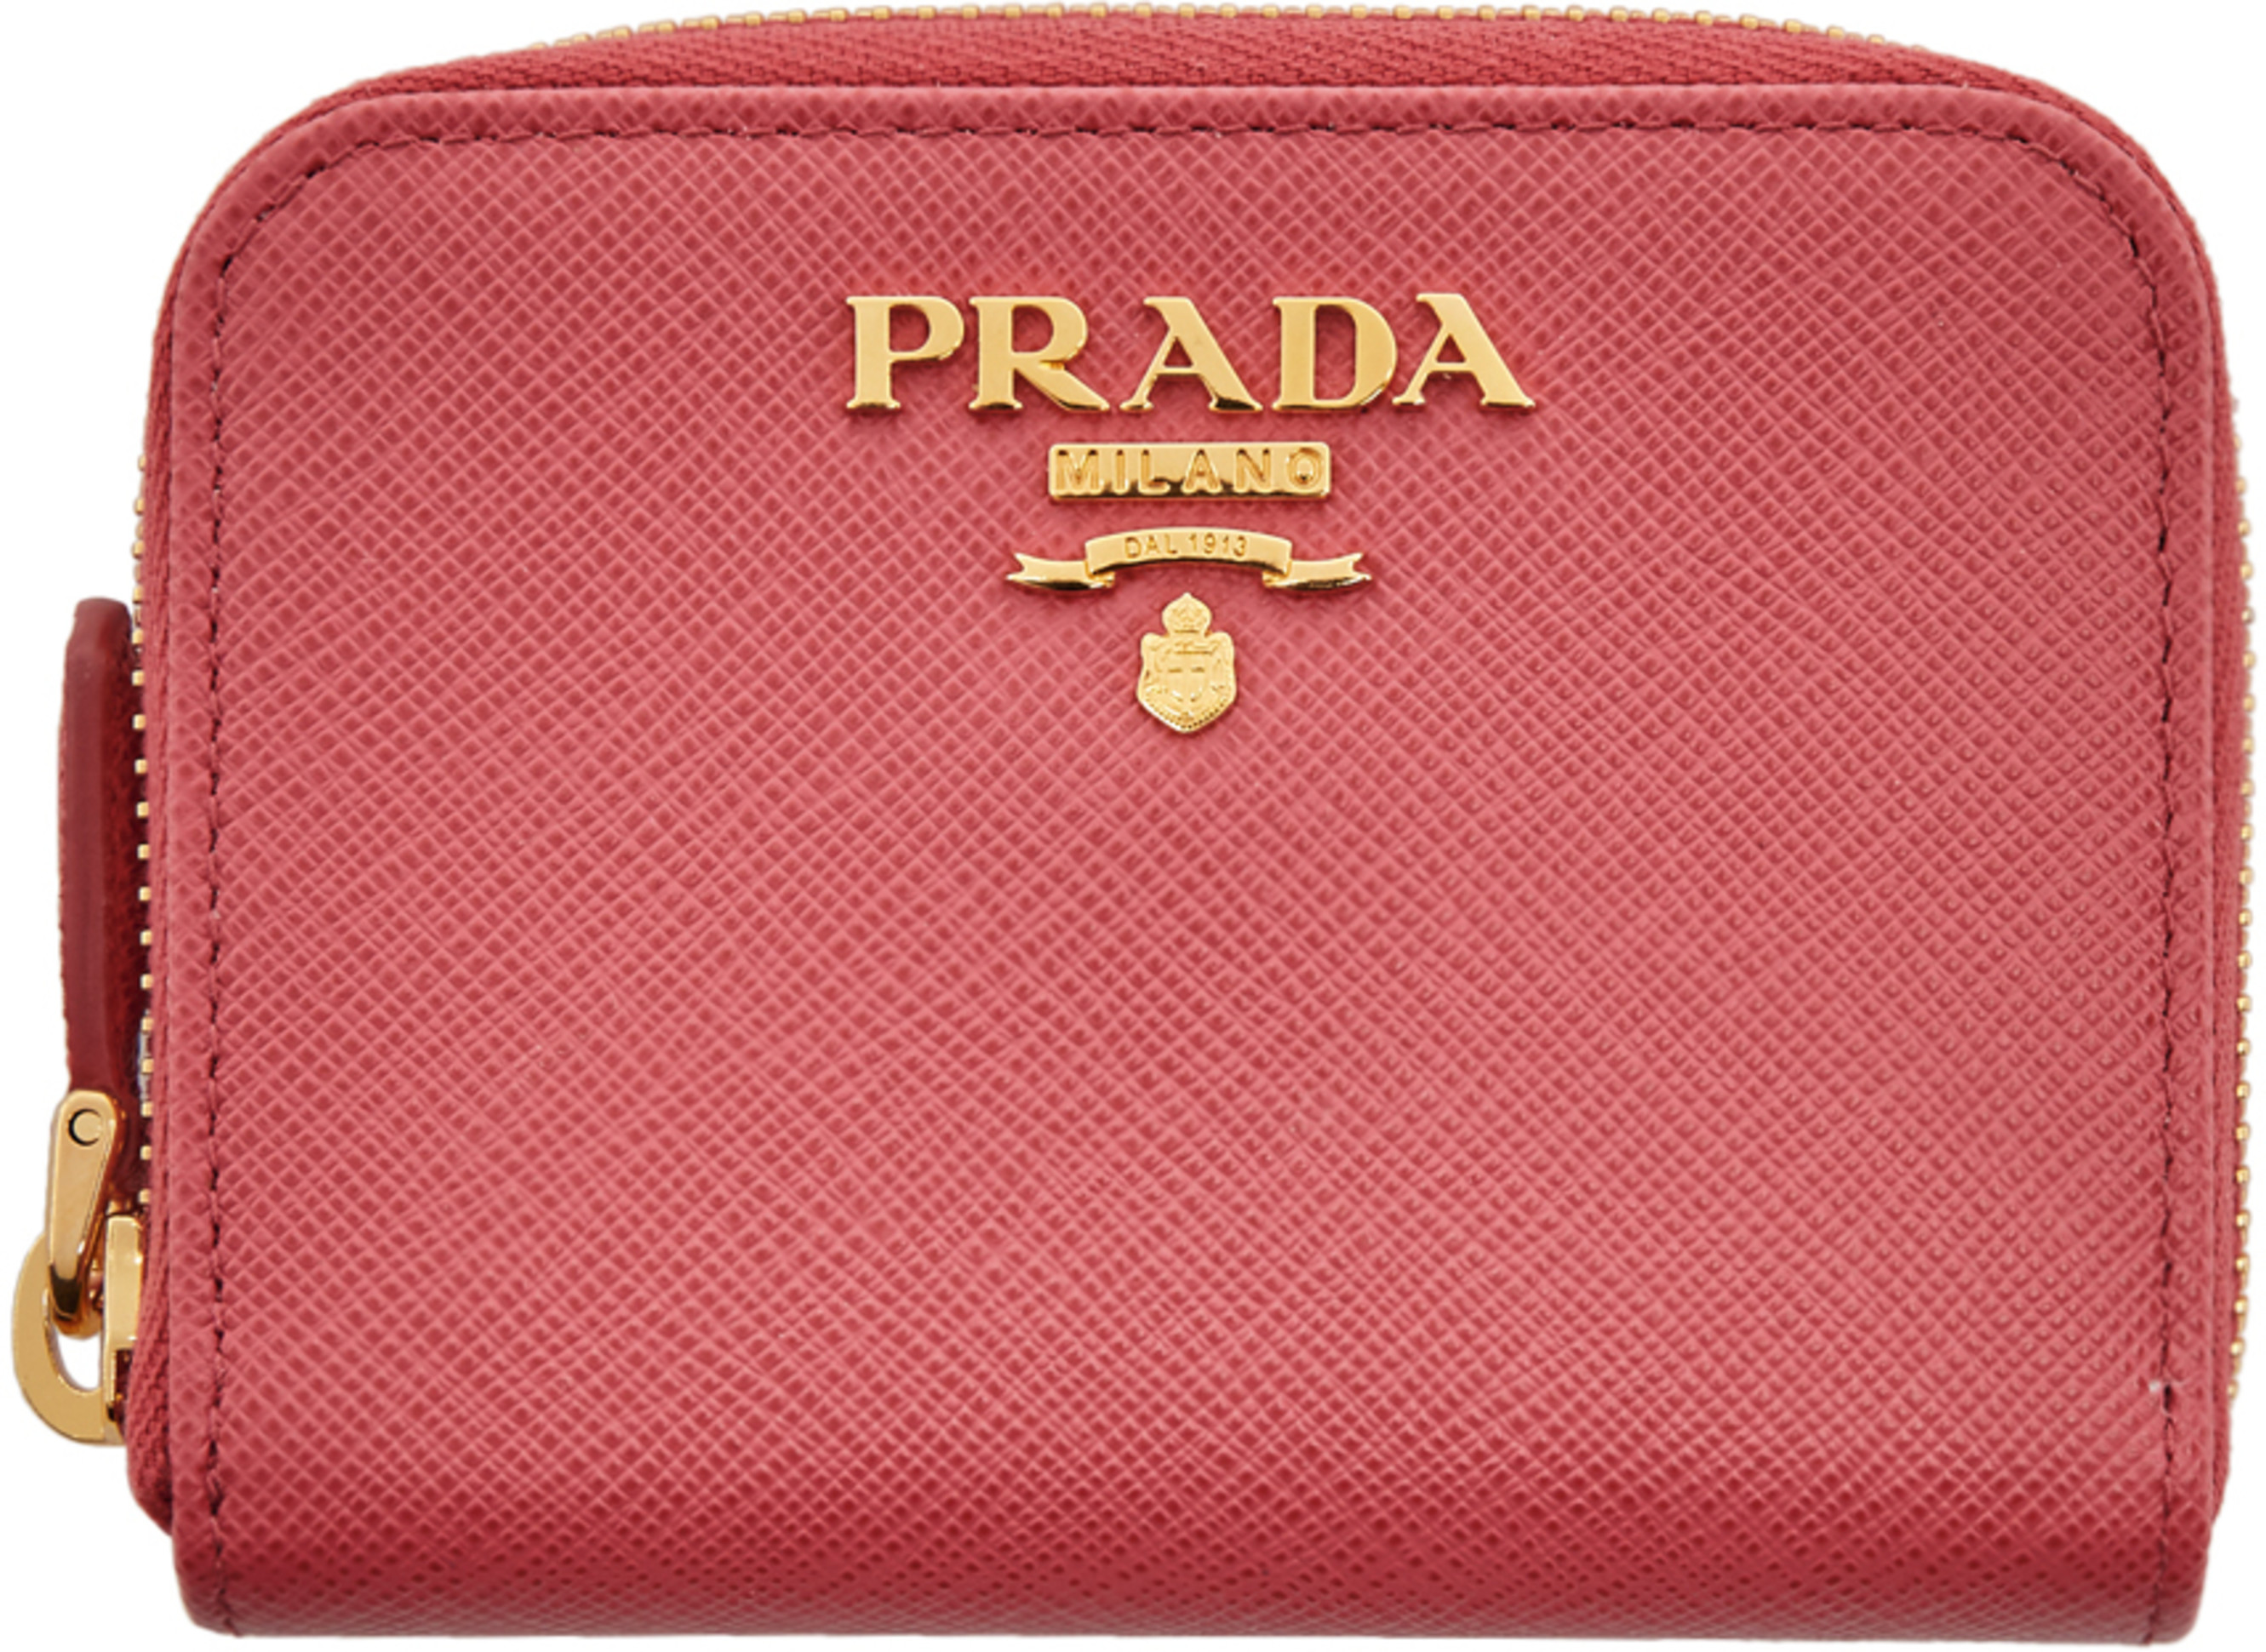 6b8f246111fc24 Prada for Women SS19 Collection | SSENSE UK